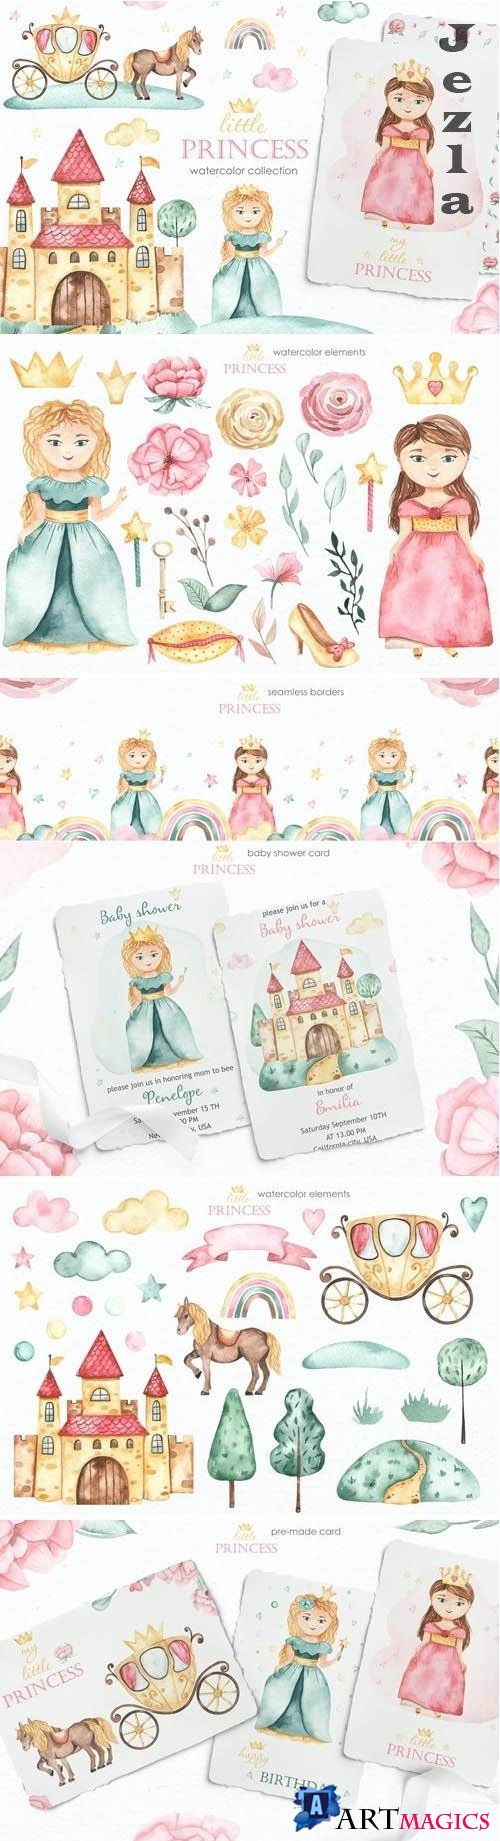 Little princess watercolor - 5660302